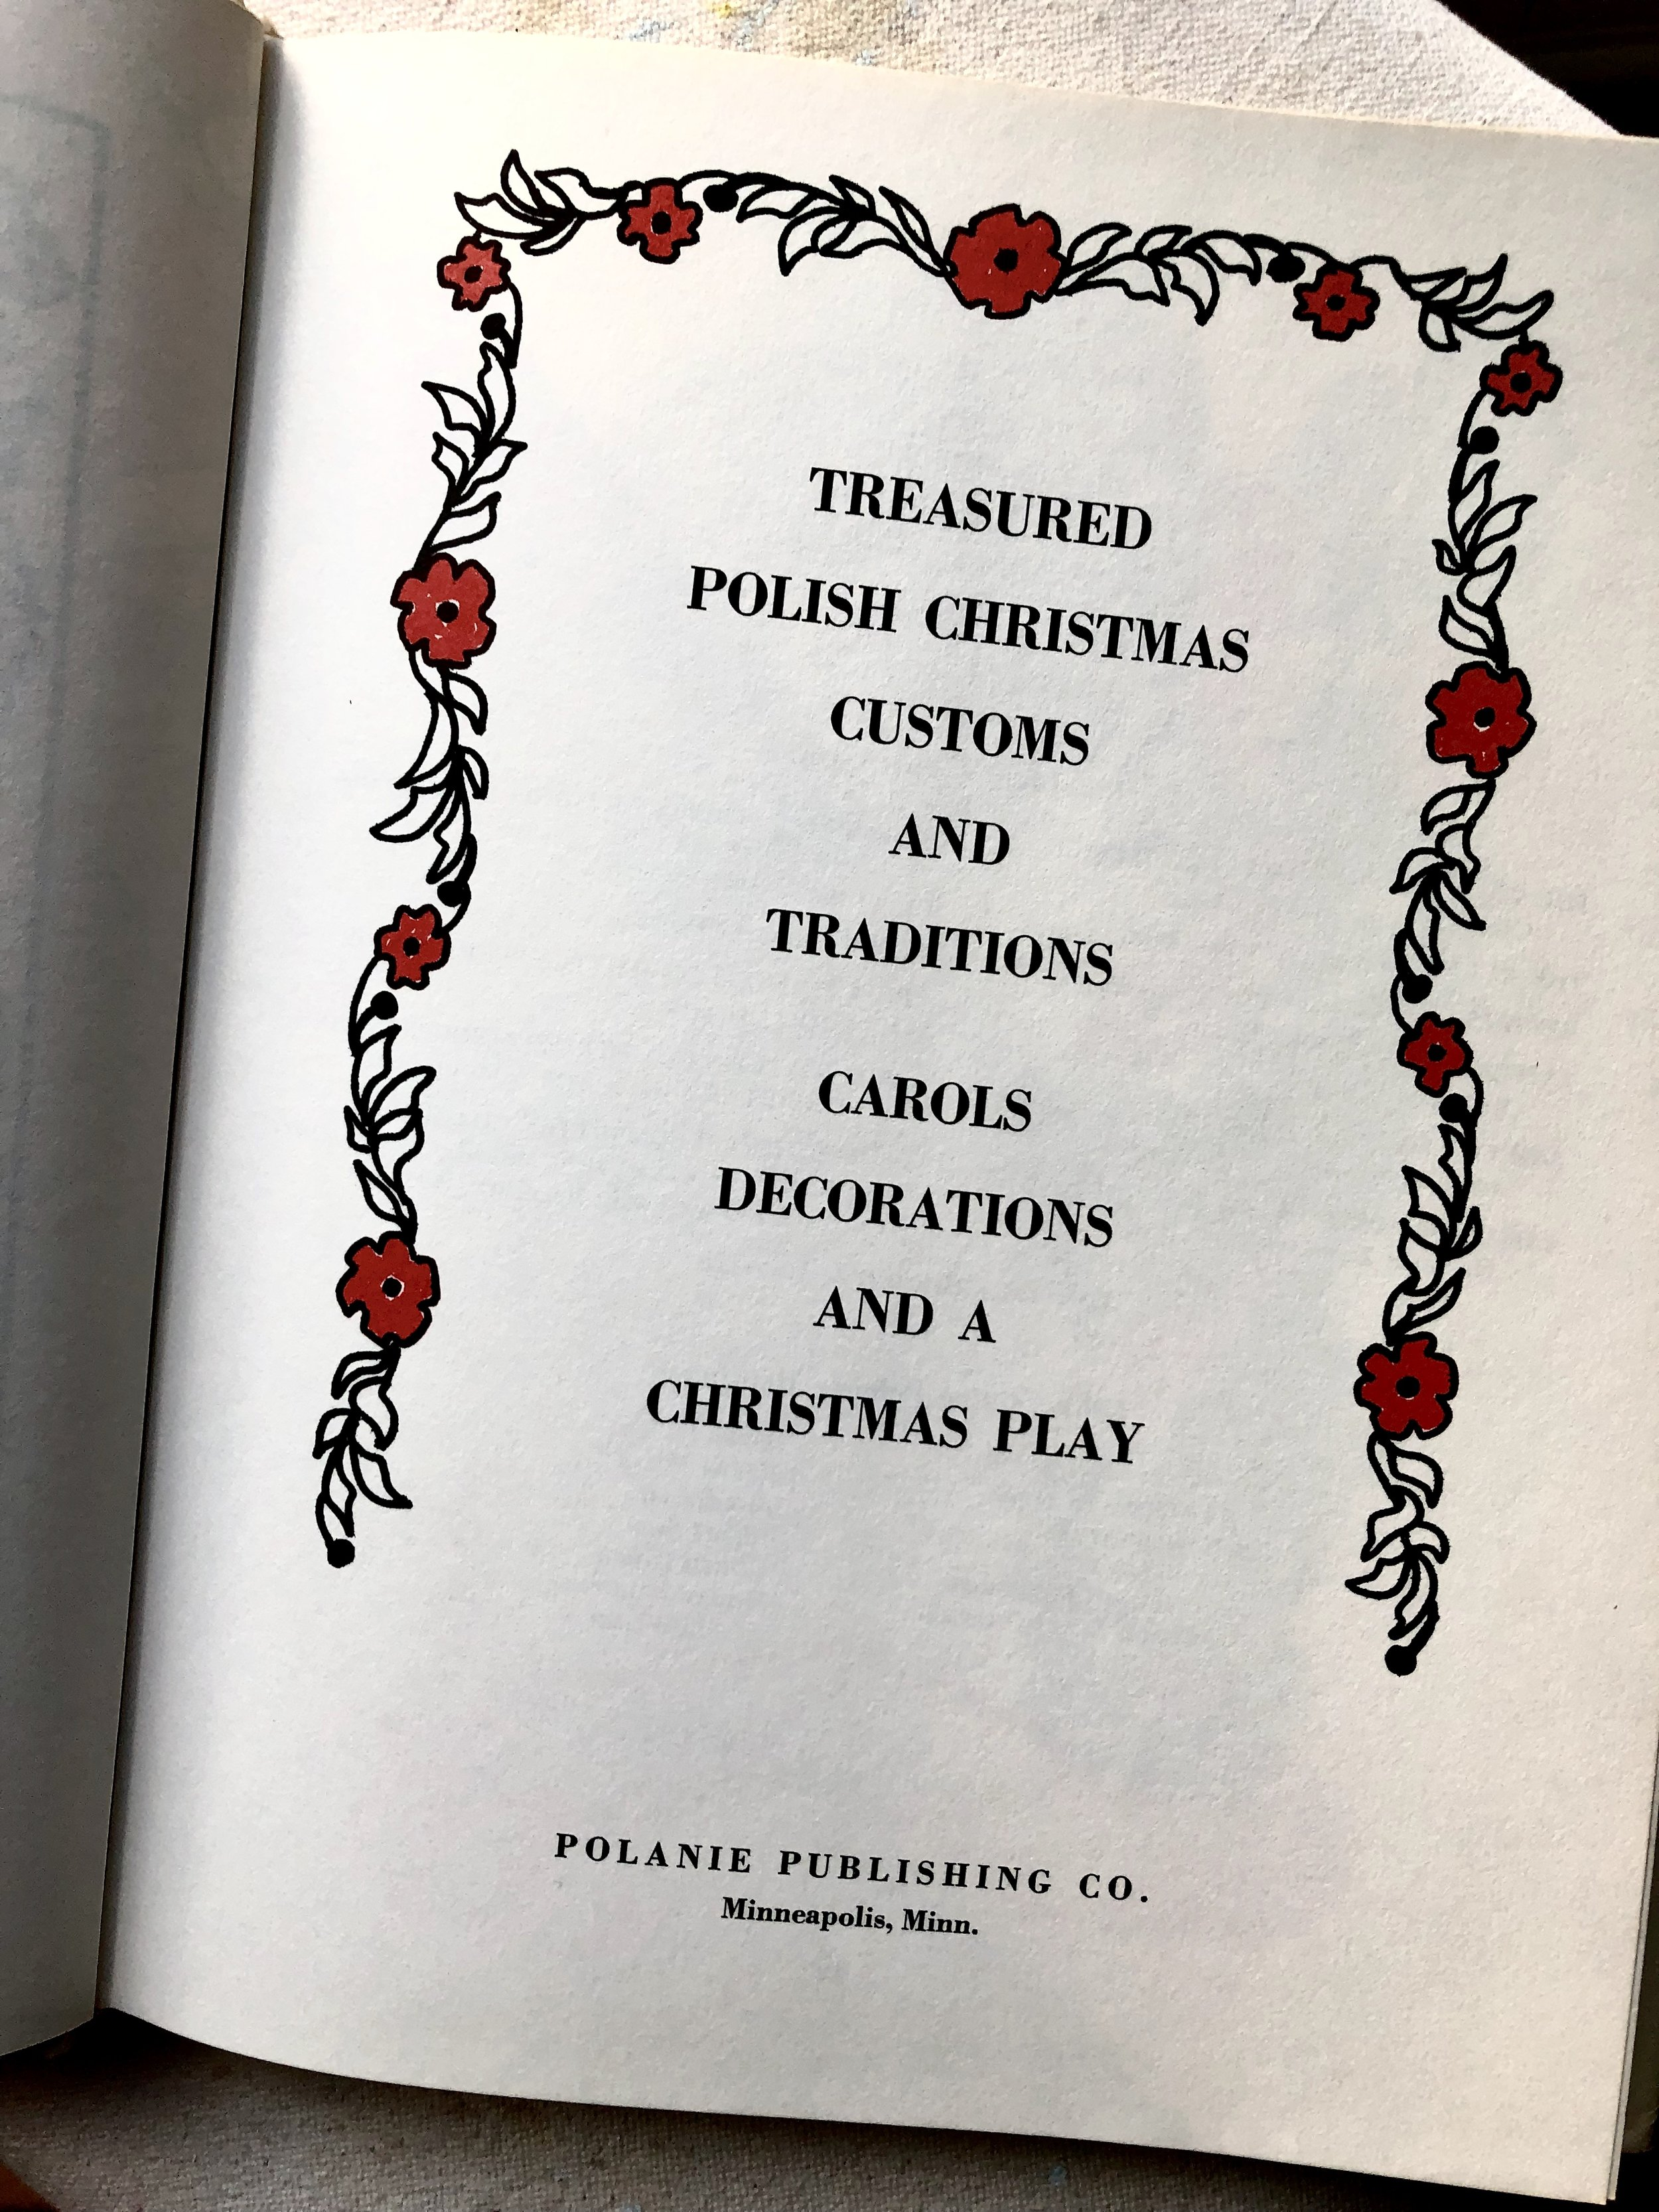 discovering the season of advent through my Polish past